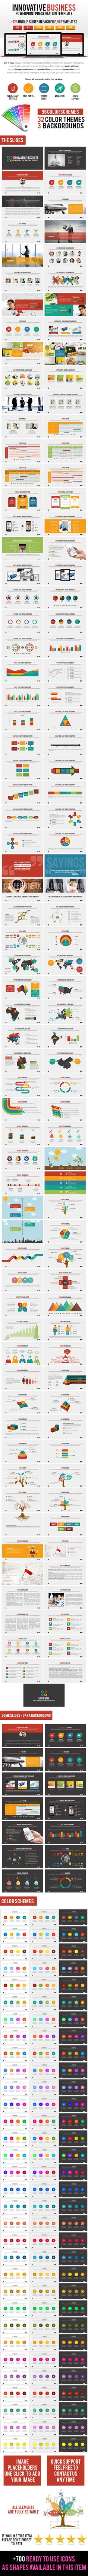 9 Projects To Try Ideas Powerpoint Templates Powerpoint Projects To Try